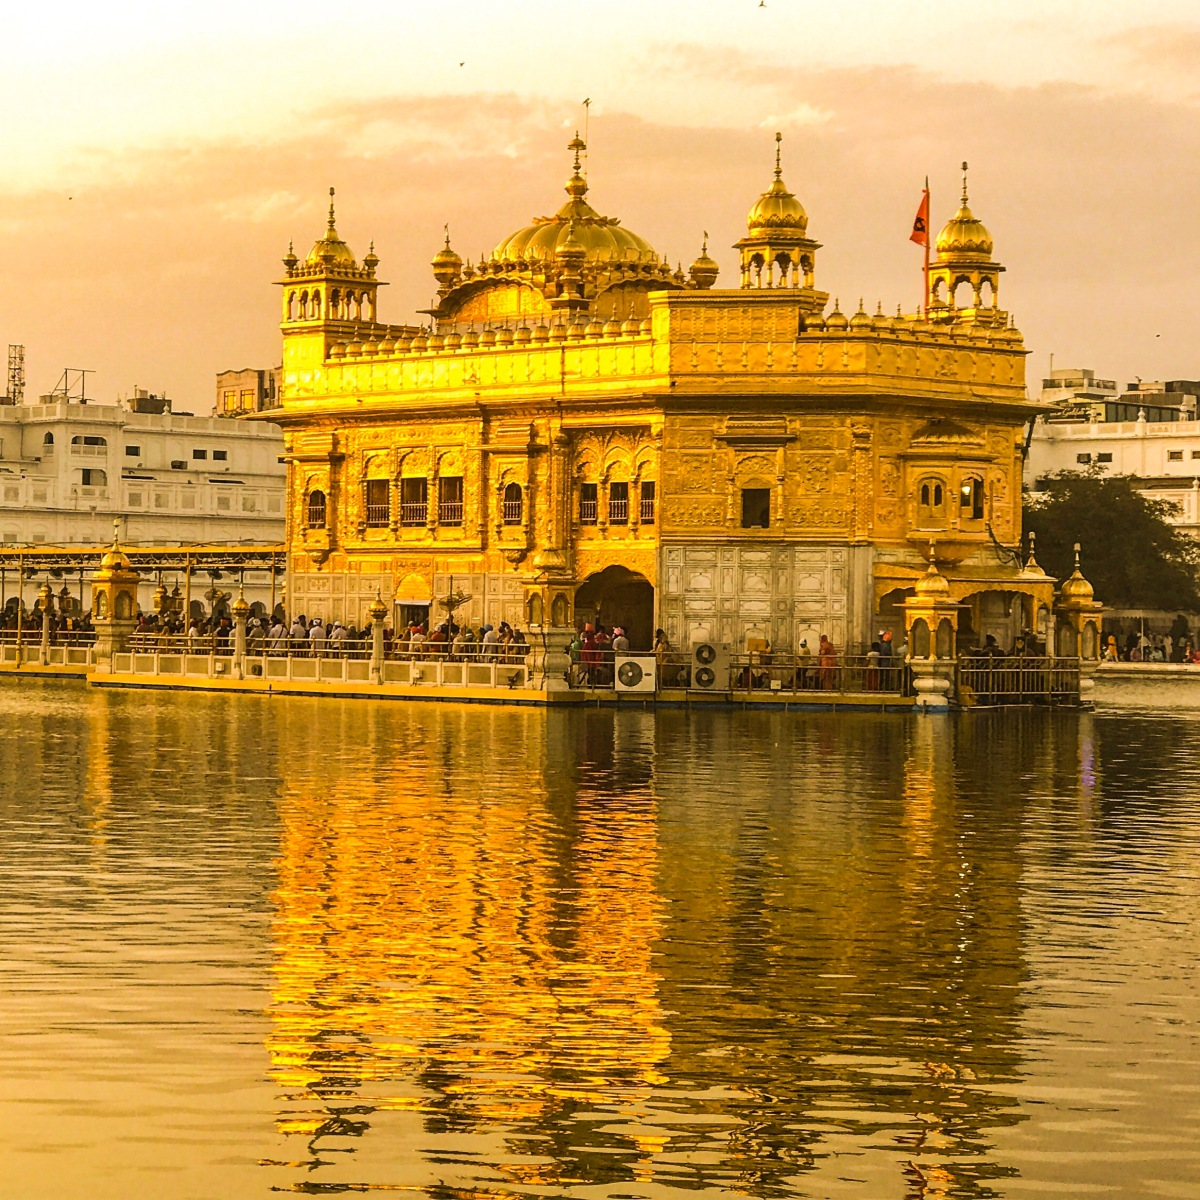 Travel Diaries: 48 Hours in Amritsar